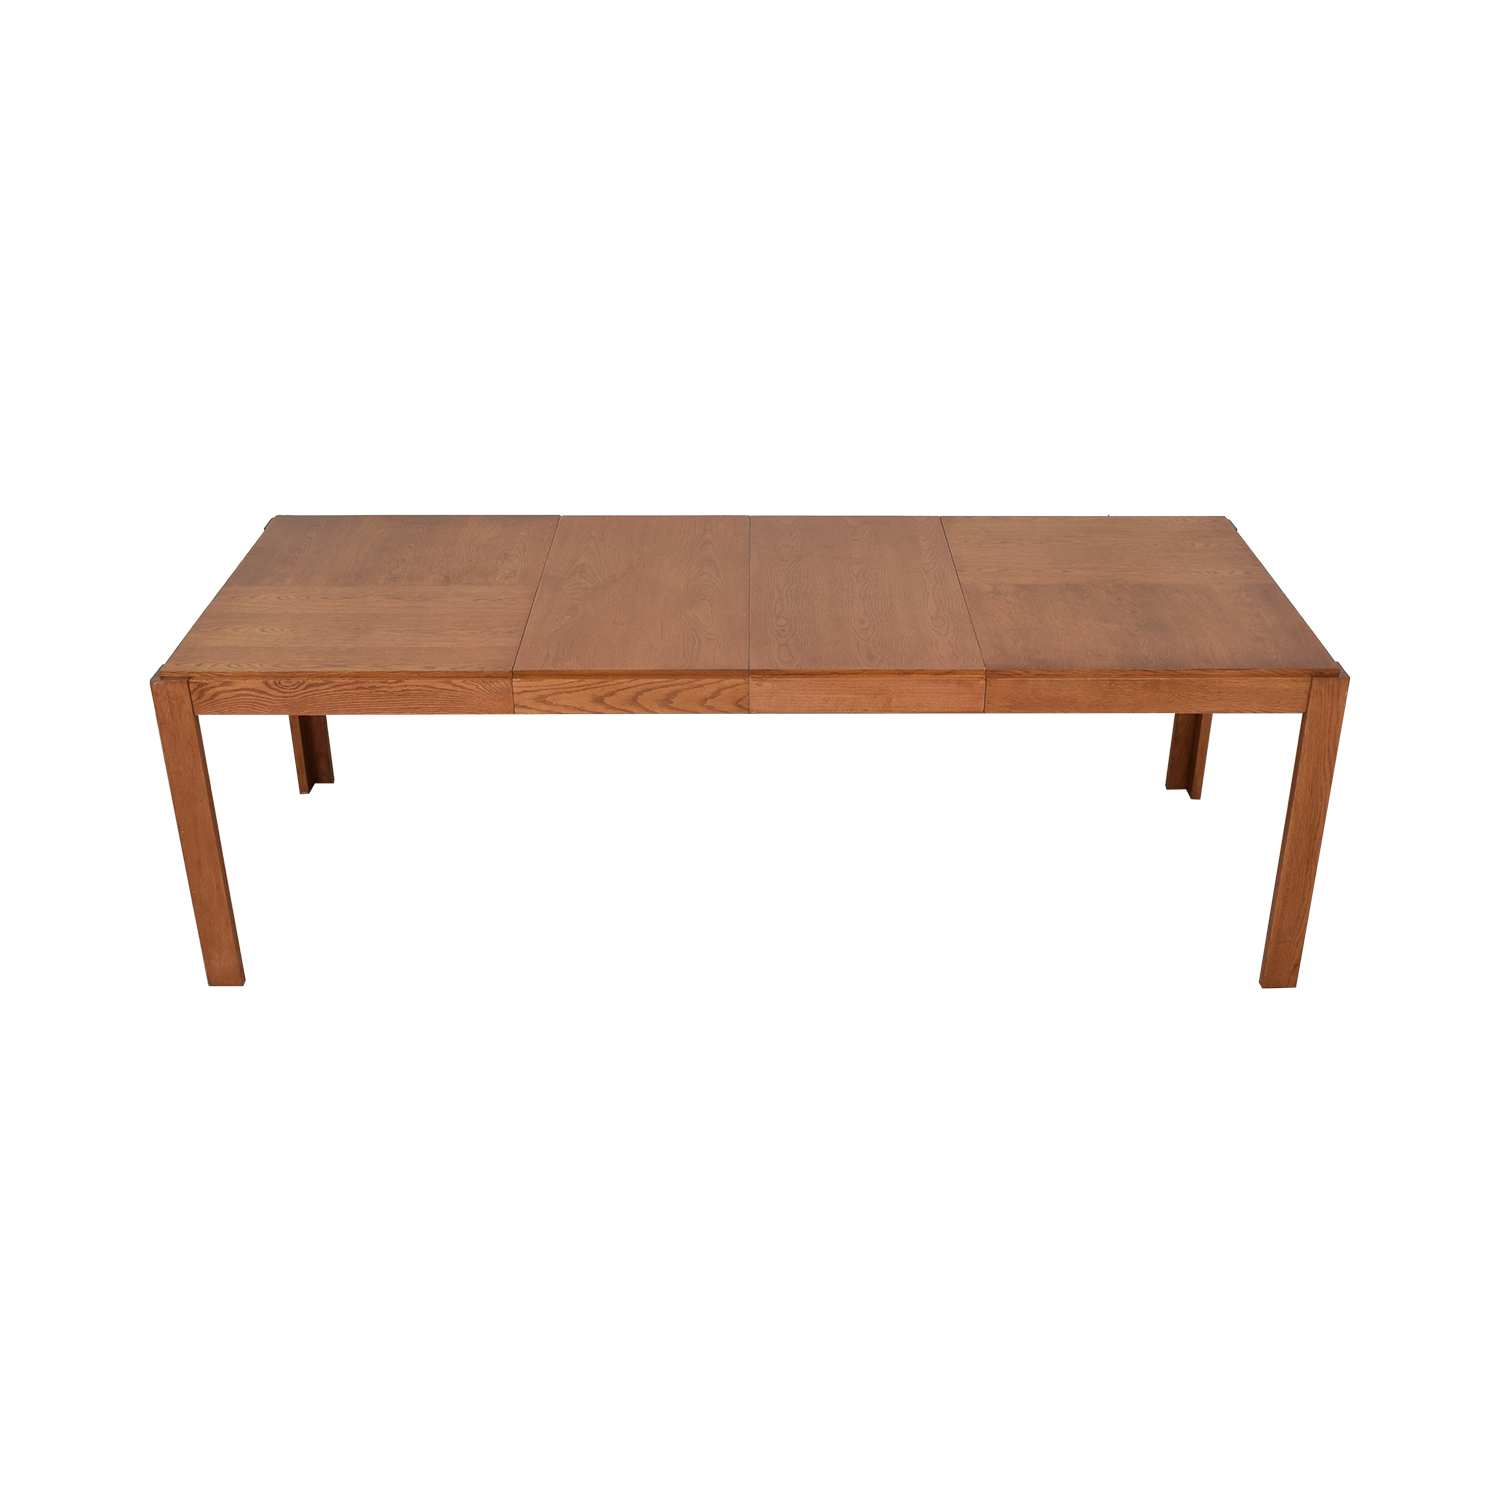 Bernhardt Bernhardt Extension Dining Table dimensions